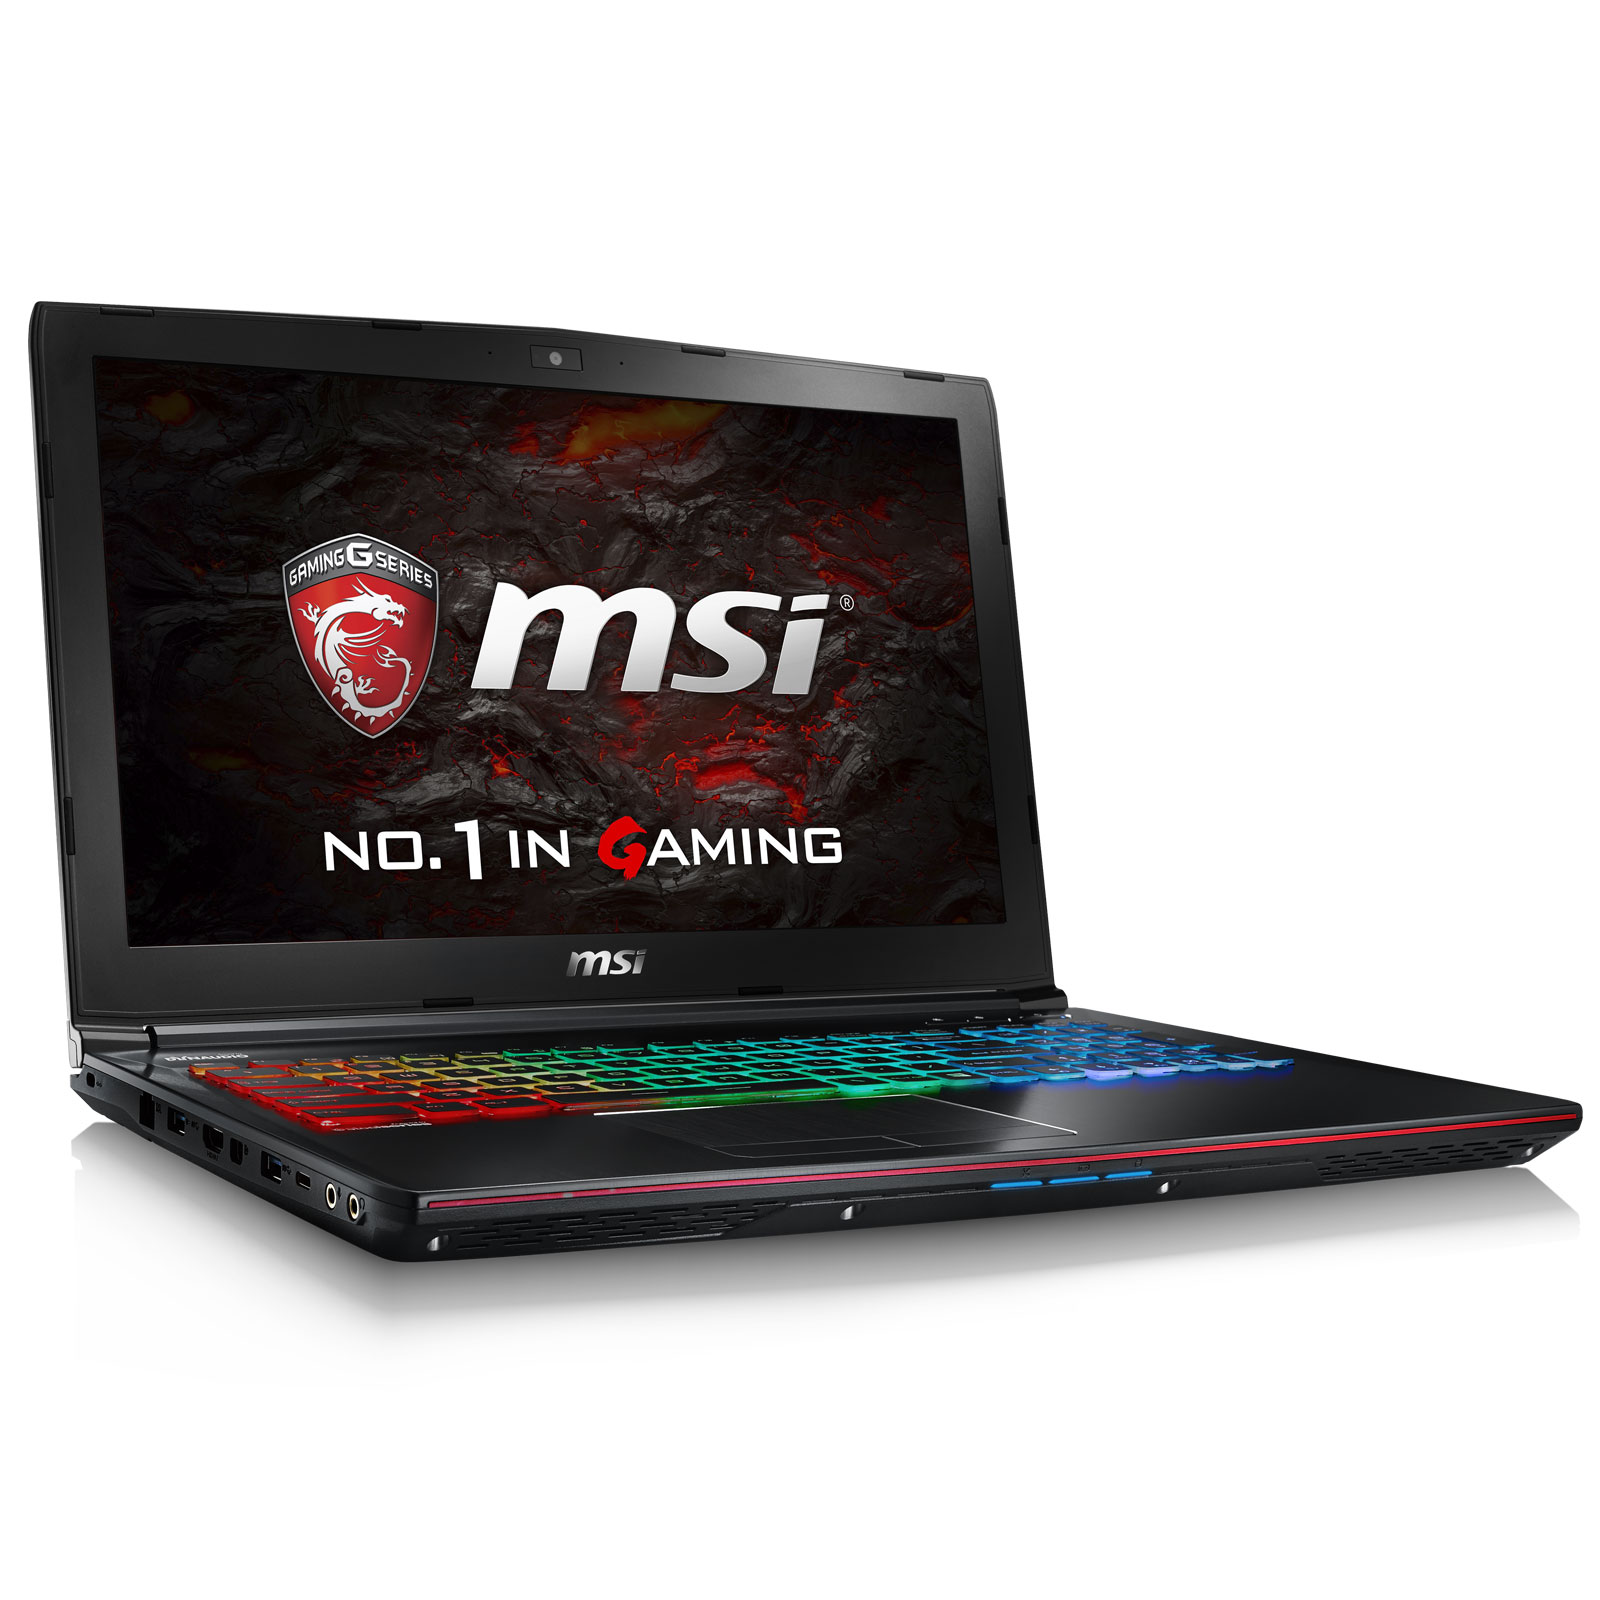 "PC portable MSI GE62VR 6RF-017XFR Apache Pro Intel Core i7-6700HQ 16 Go SSD 256 Go + HDD 1 To 15.6"" LED Full HD NVIDIA GeForce GTX 1060 6 Go Graveur DVD Wi-Fi AC/Bluetooth Webcam Free DOS (garantie constructeur 2 ans)"